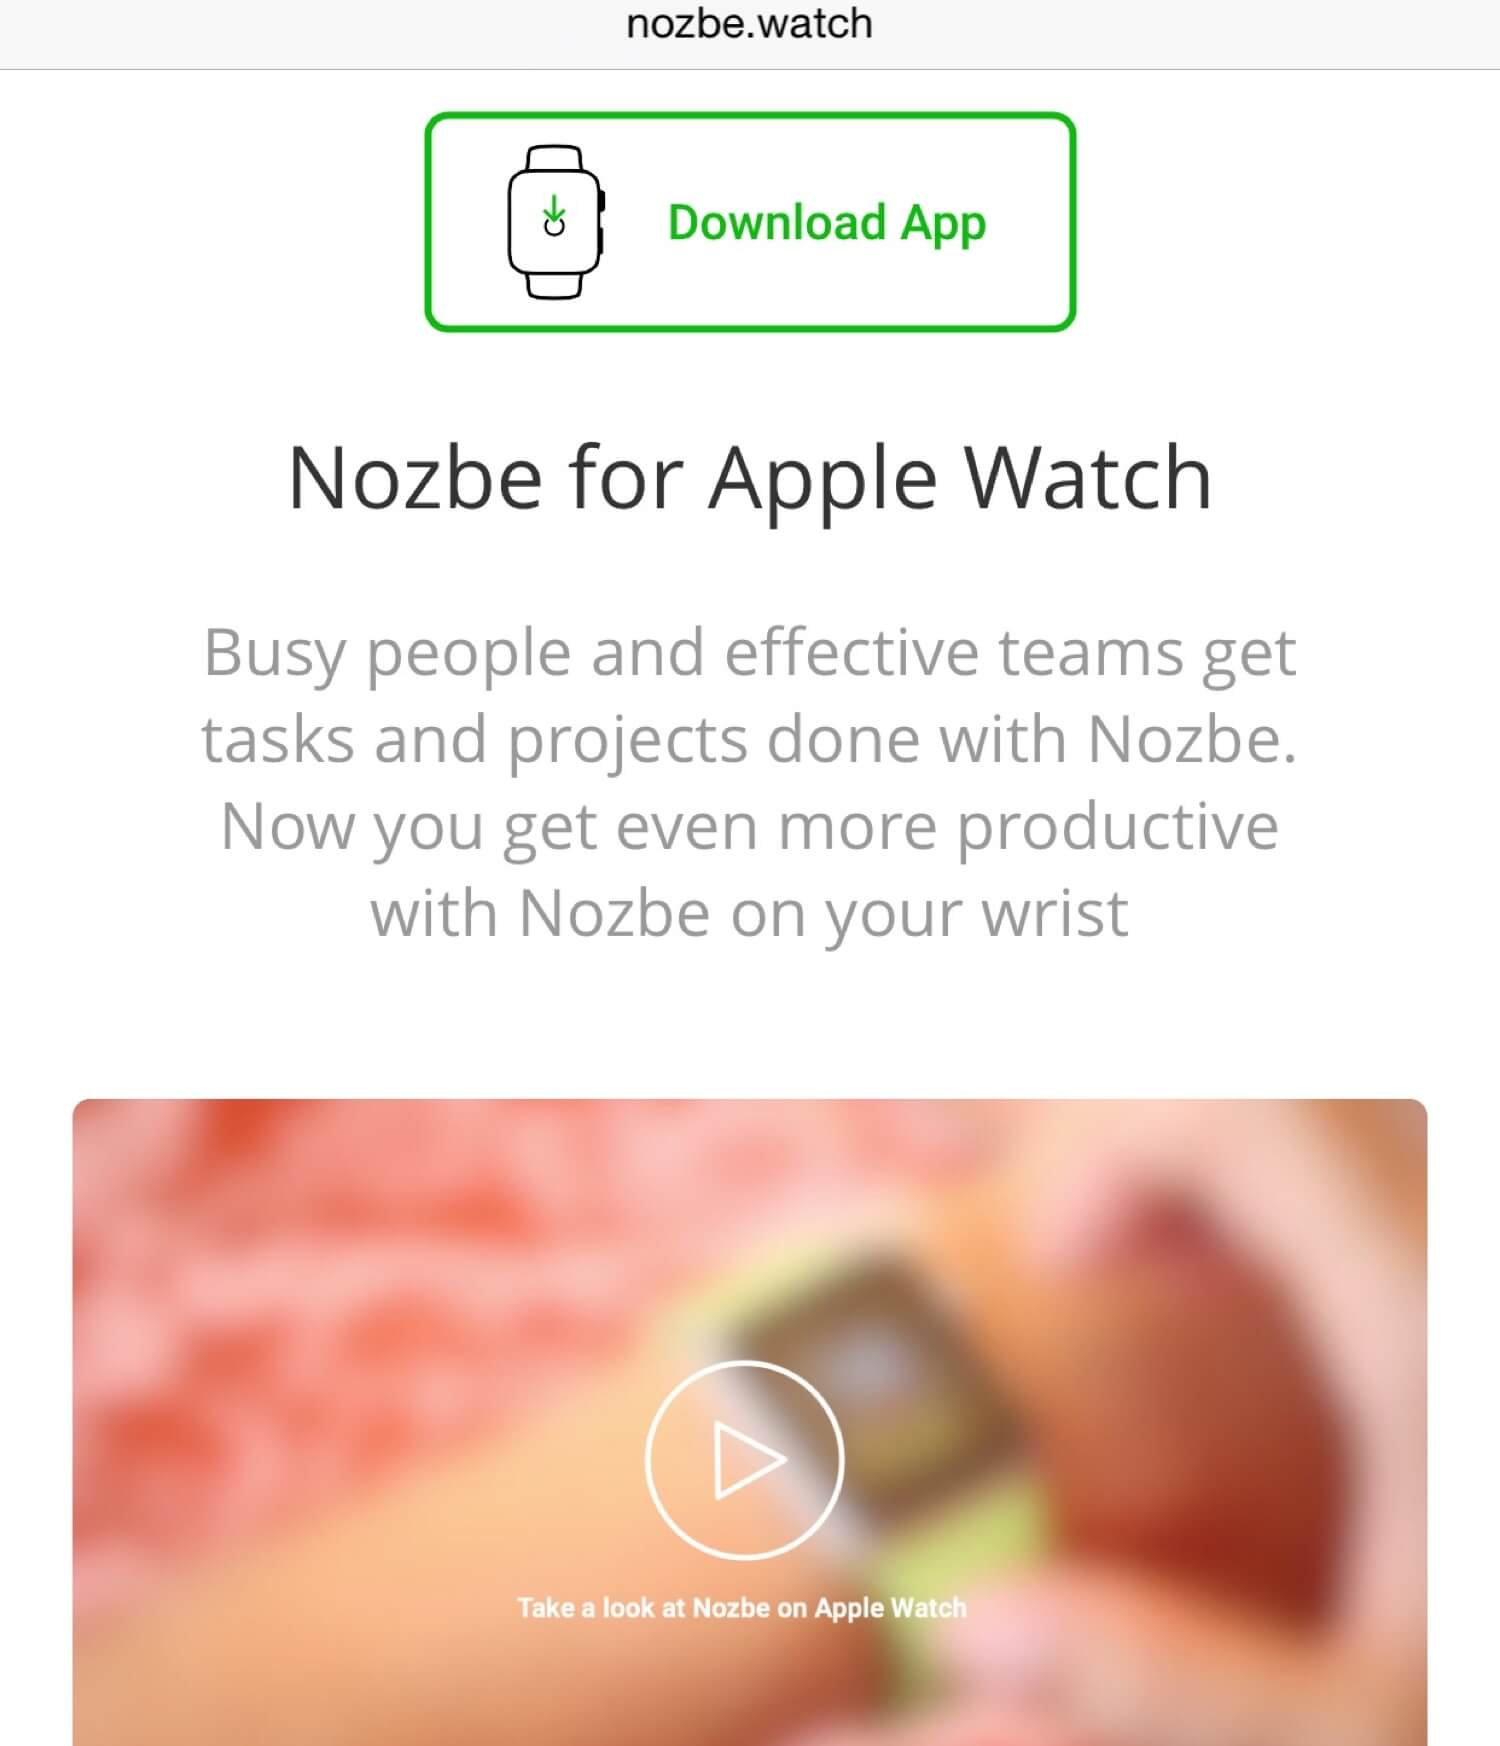 New video with yours truly - how to get things done on your wrist [on: Nozbe.watch]